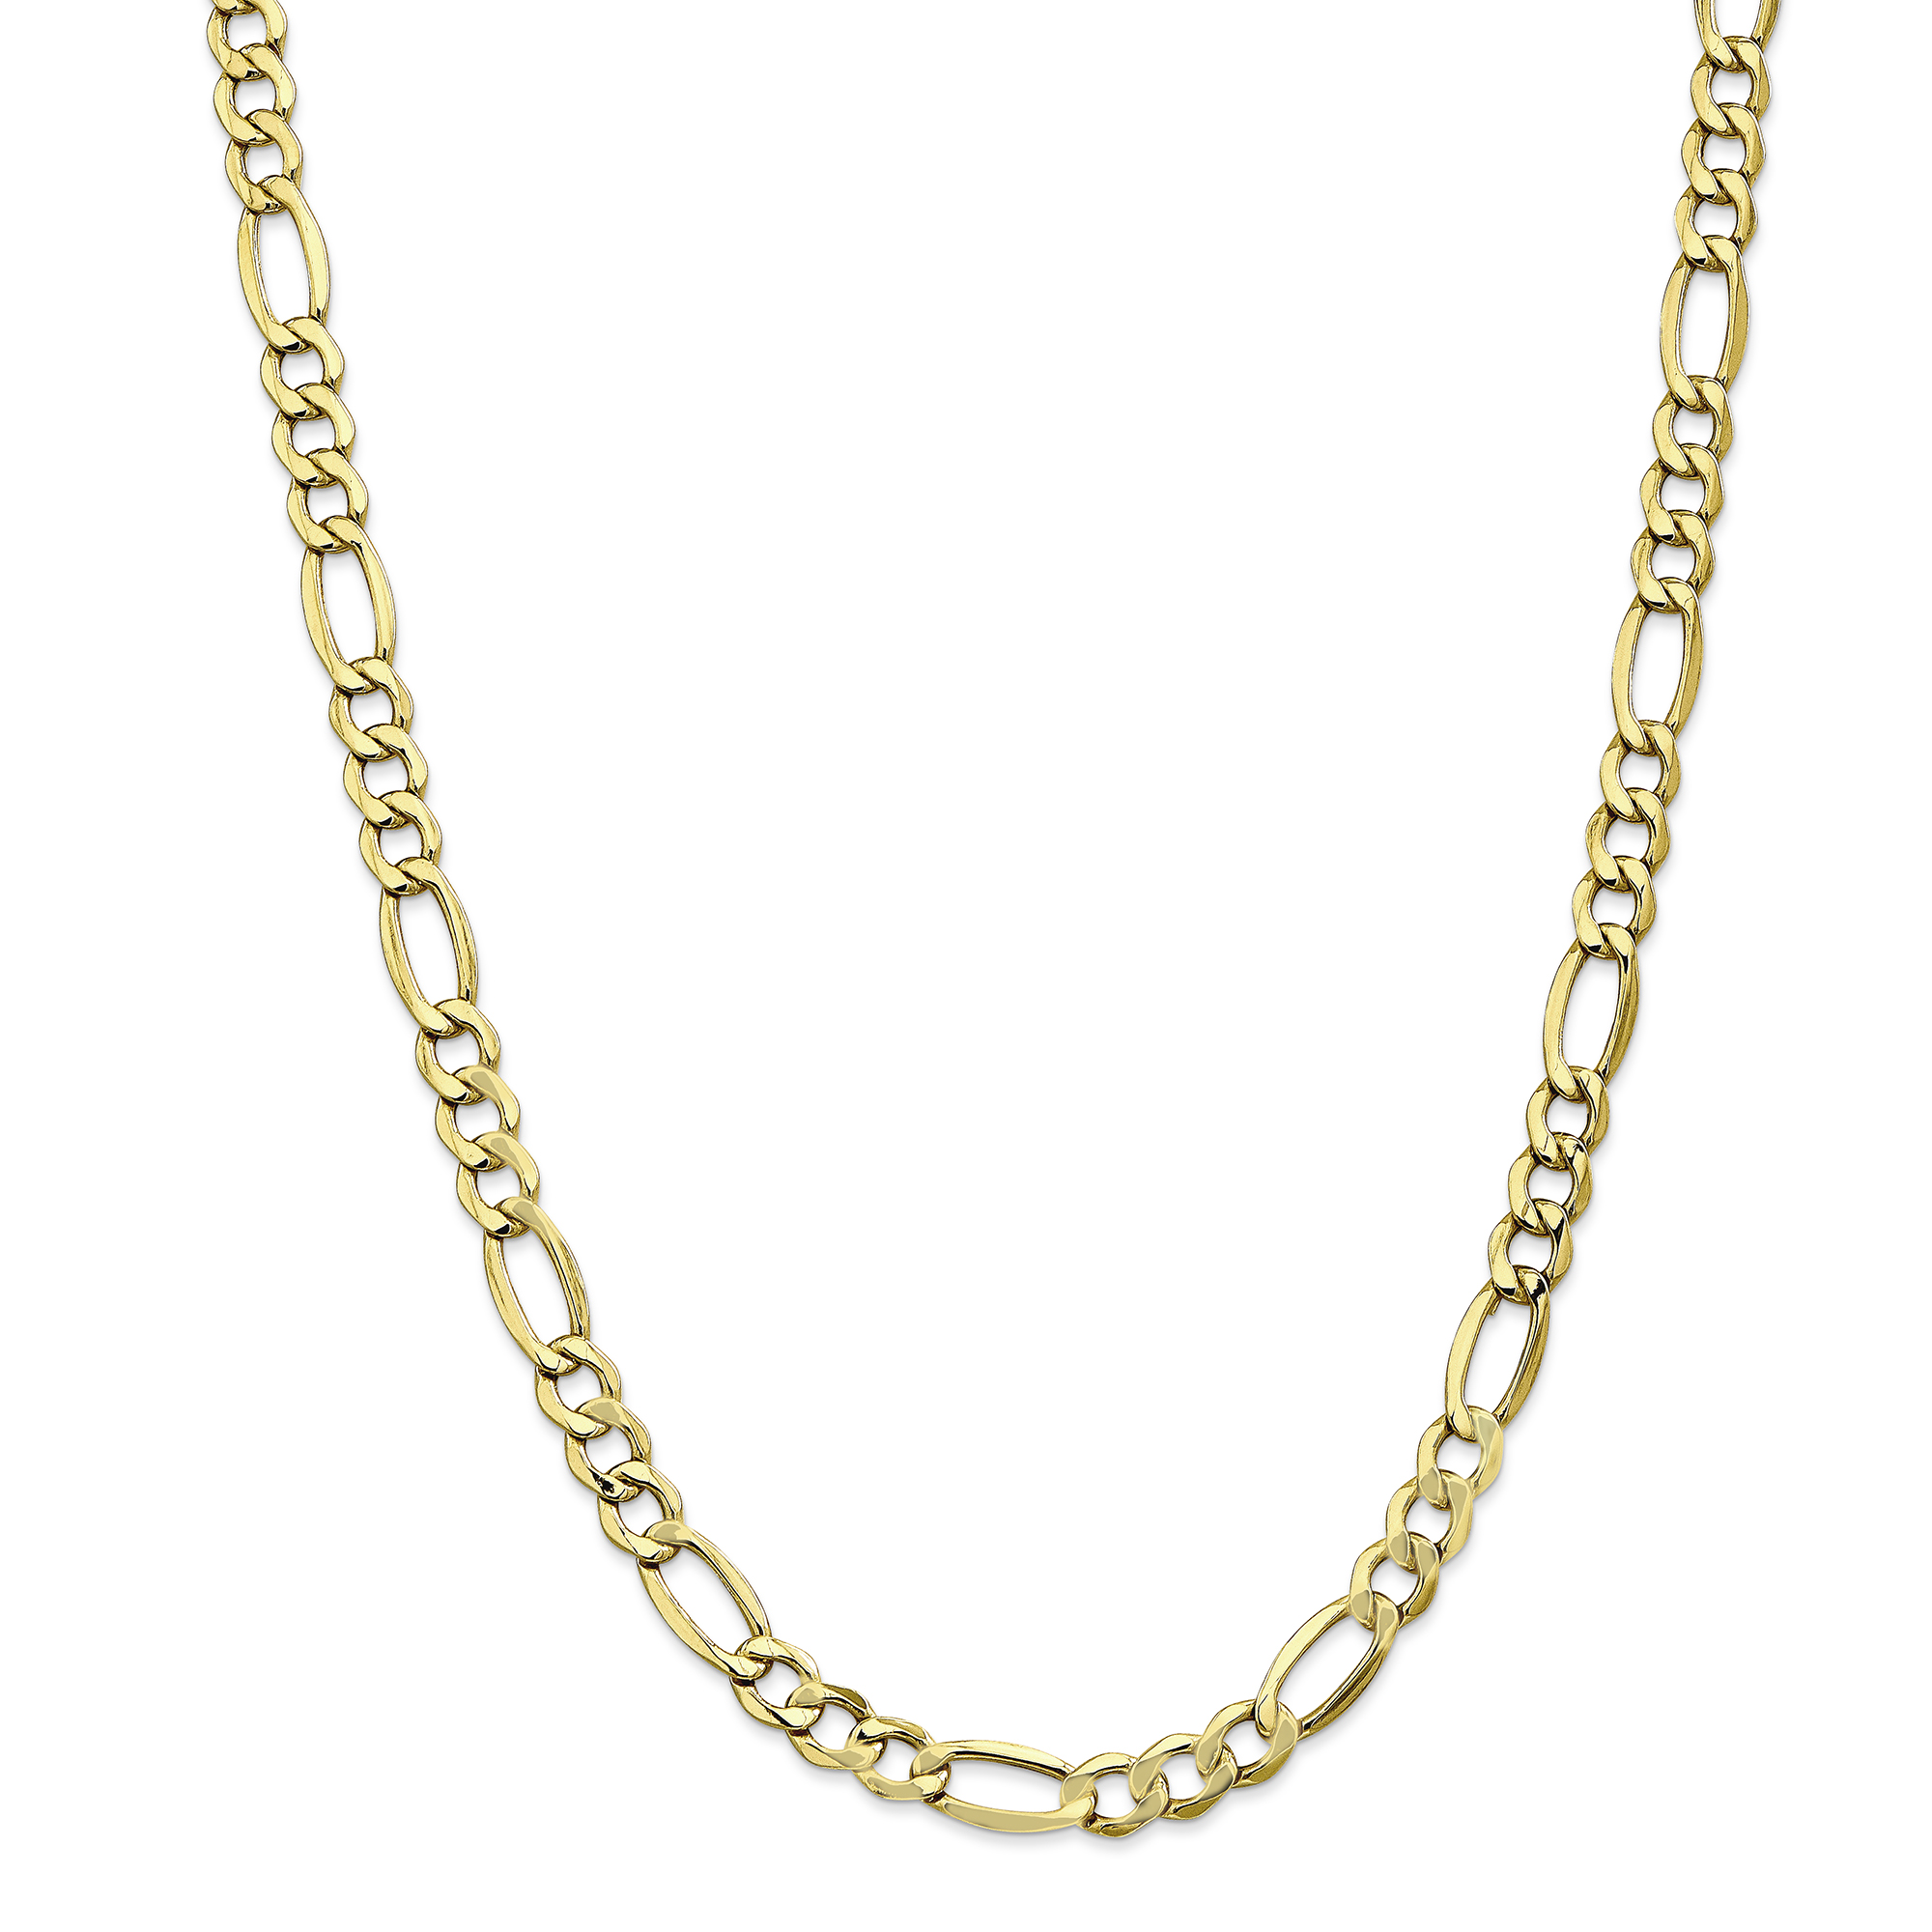 10K Yellow Gold 7.3mm Semi-Solid Figaro Chain 24 IN - image 5 of 5